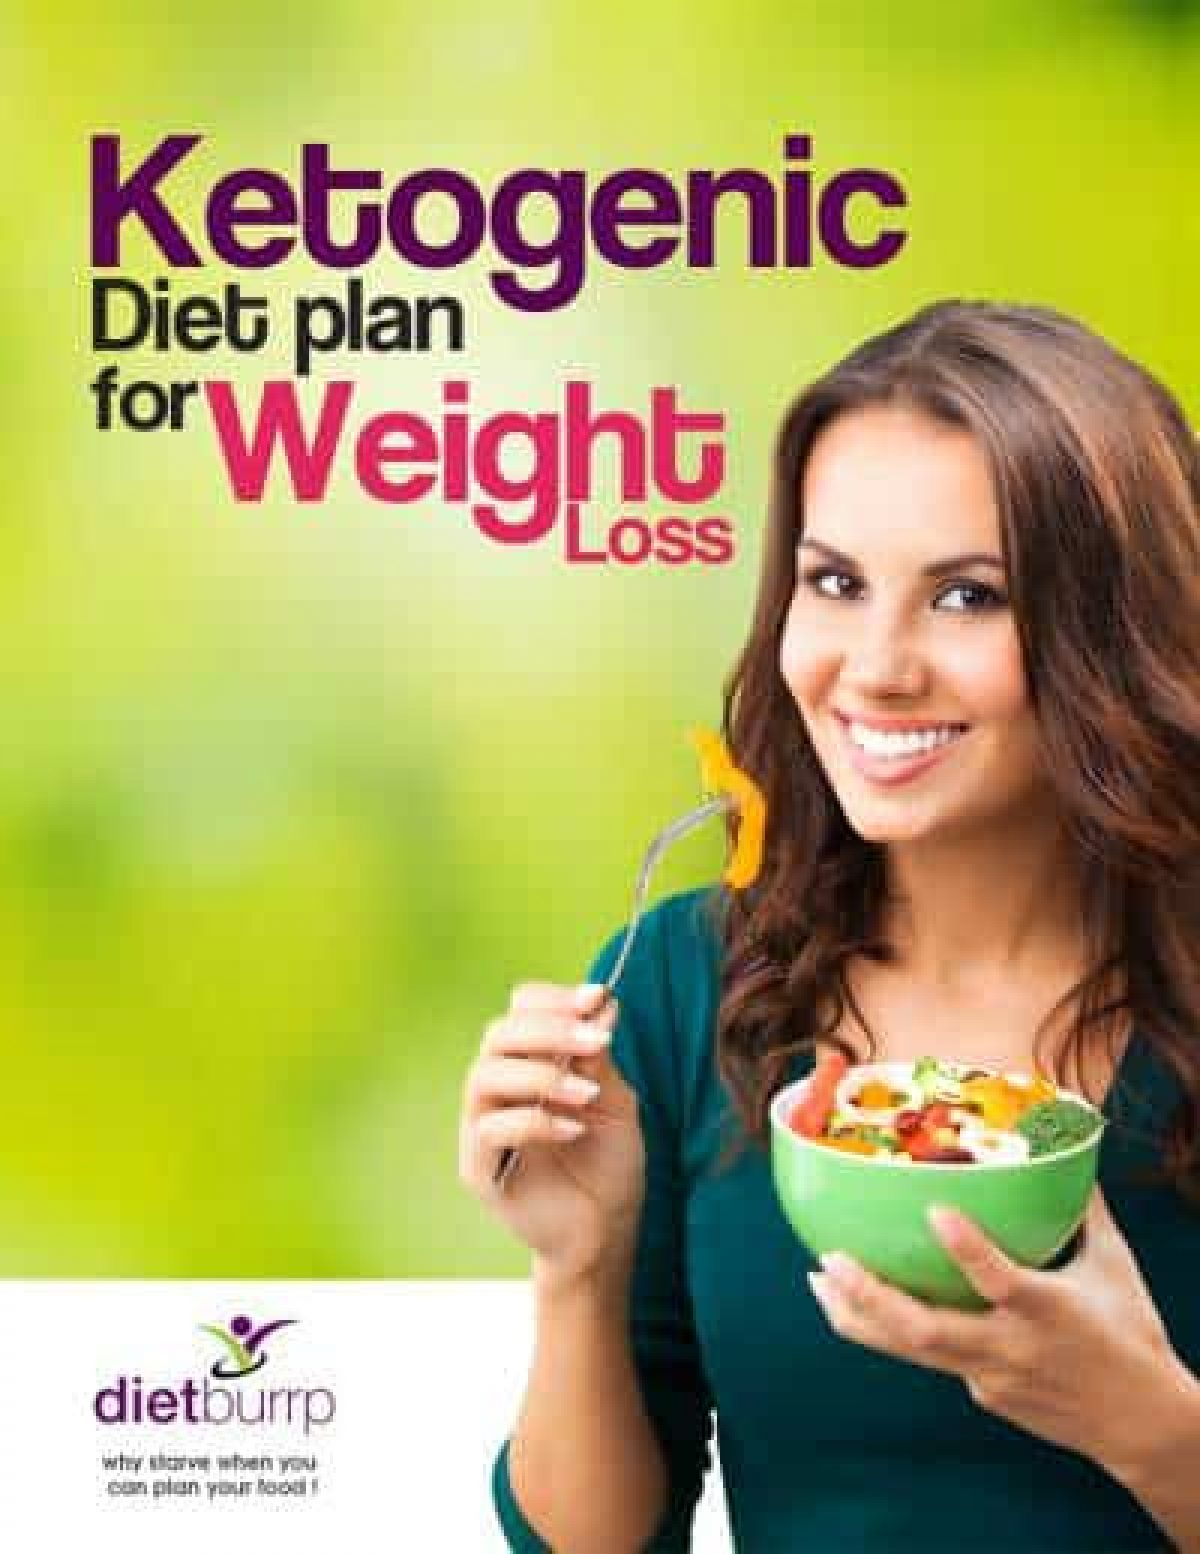 Indian Version Of Ketogenic Diet For Weight Loss Indian Keto Diet Plan Dietburrp